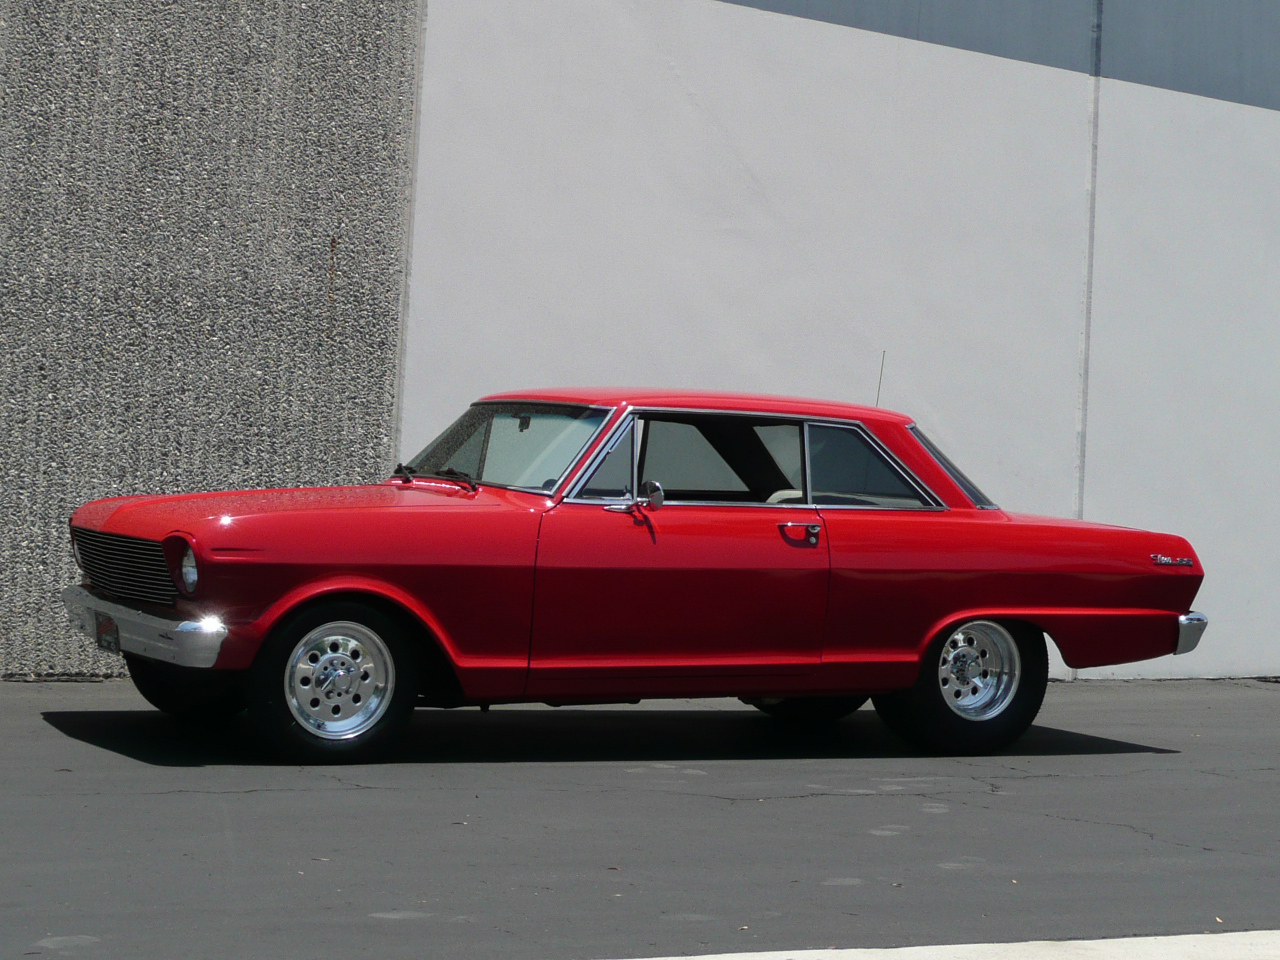 1963 CHEVROLET NOVA SS CUSTOM 2 DOOR HARDTOP - Side Profile - 80989